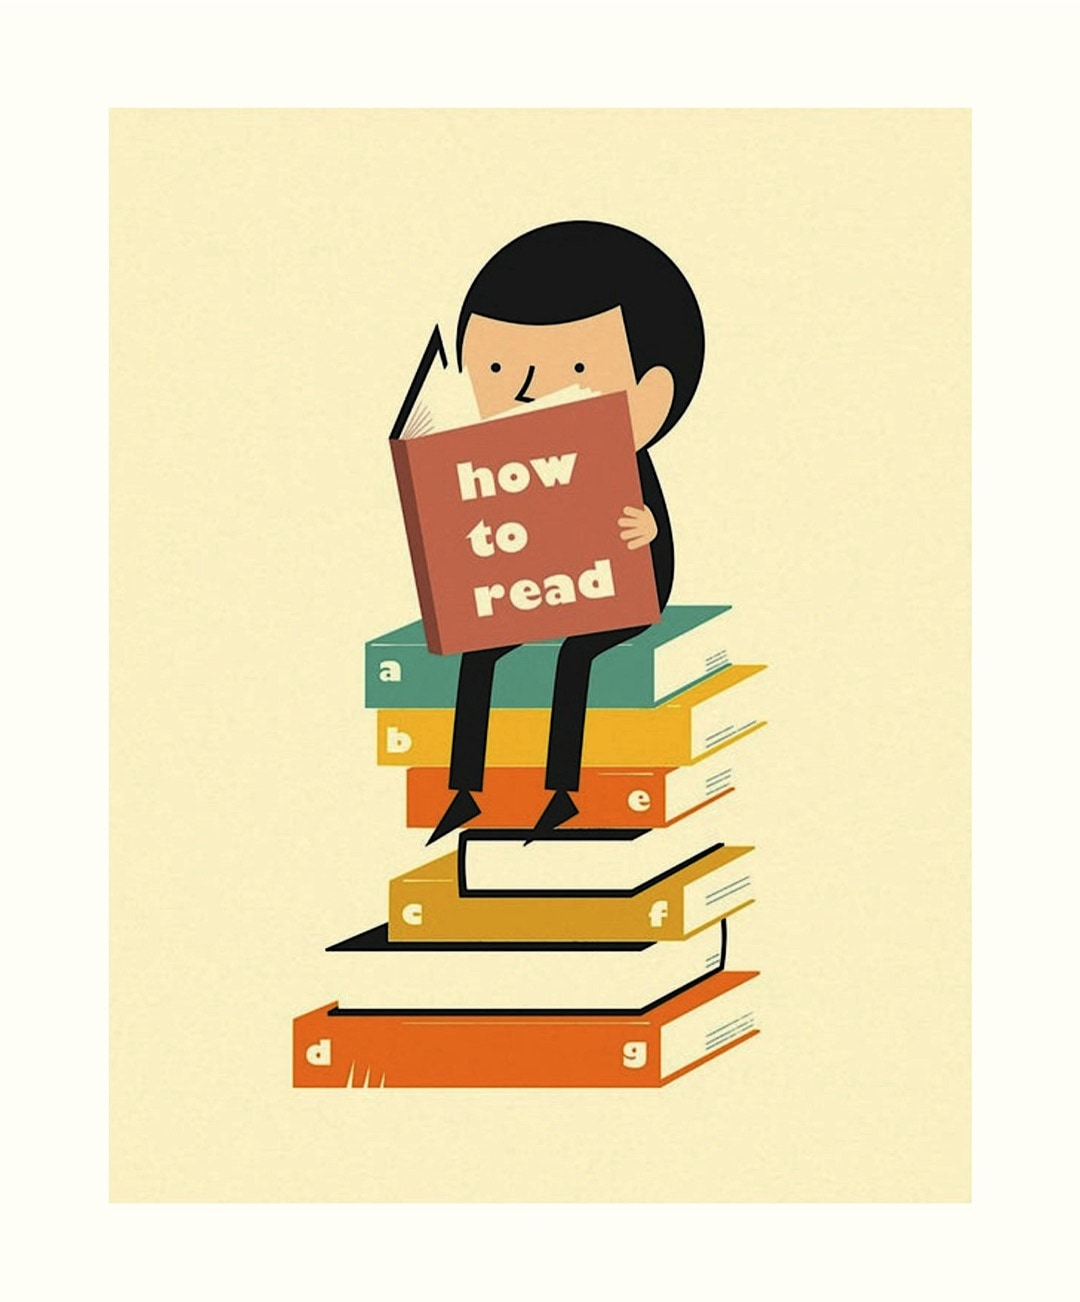 How to read poster by Jazzberry Blue